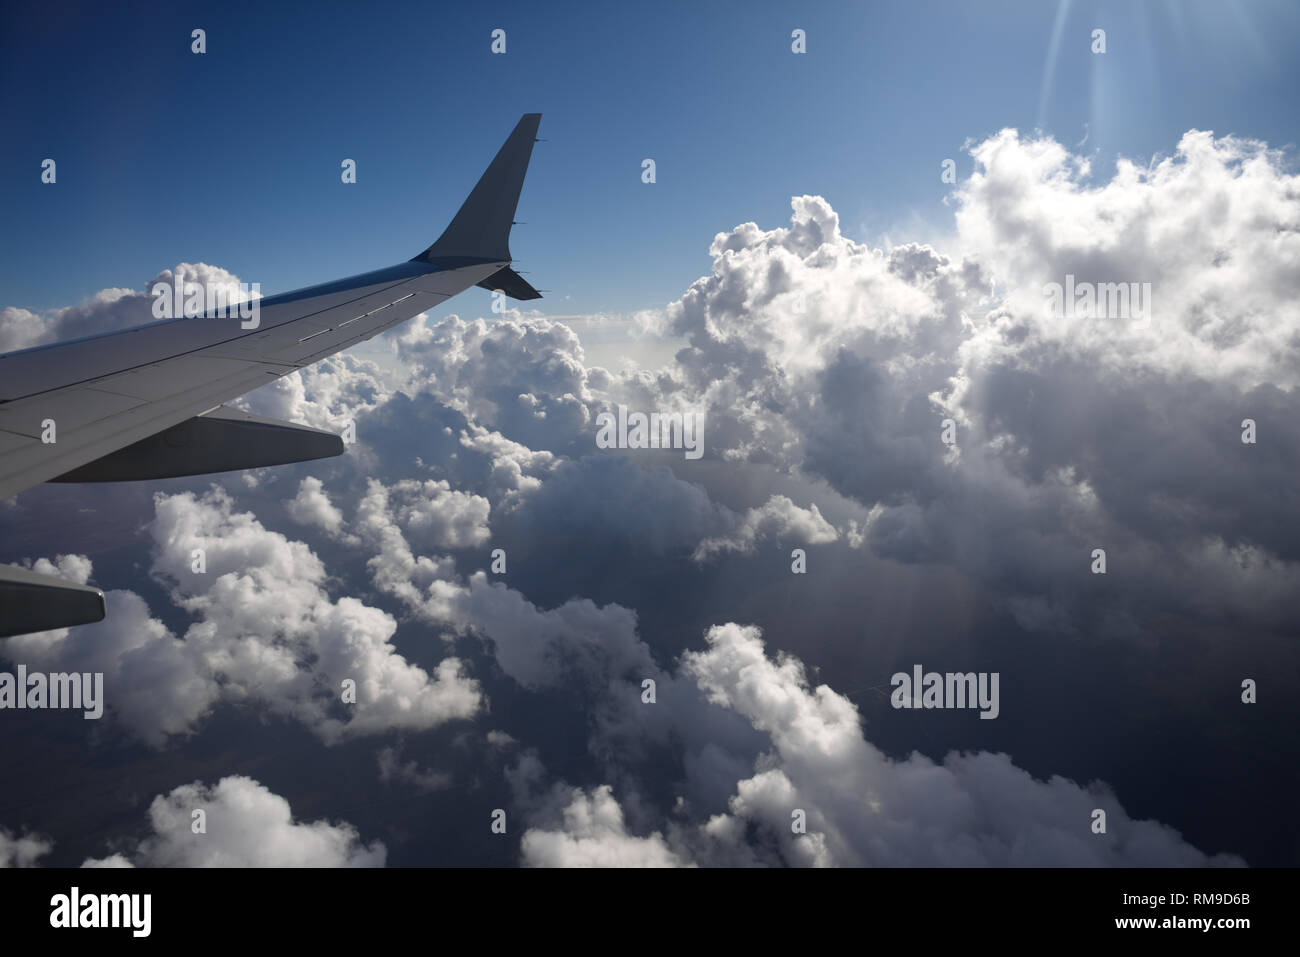 High altitude jet airplane view of wing with winglet, flying above clouds. - Stock Image